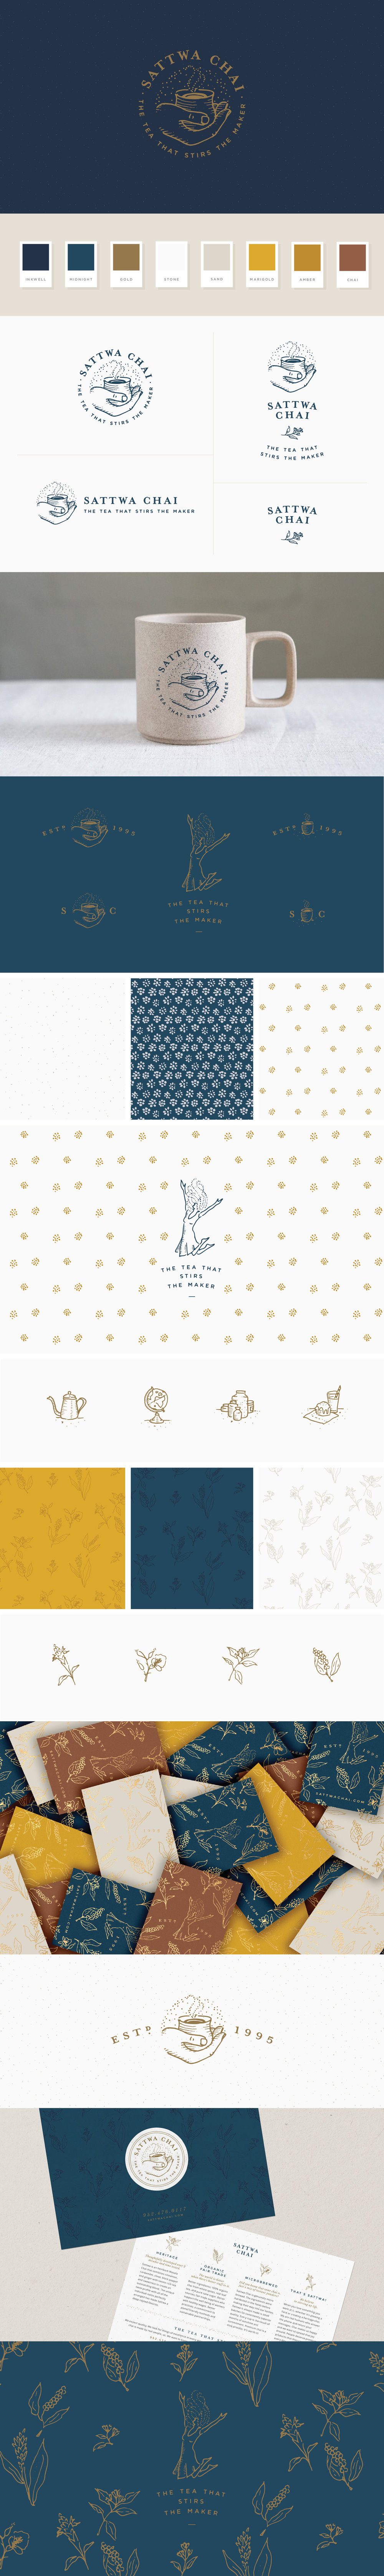 Sattwa Chai -logo &brand identity design crafted by Melissa Yeager